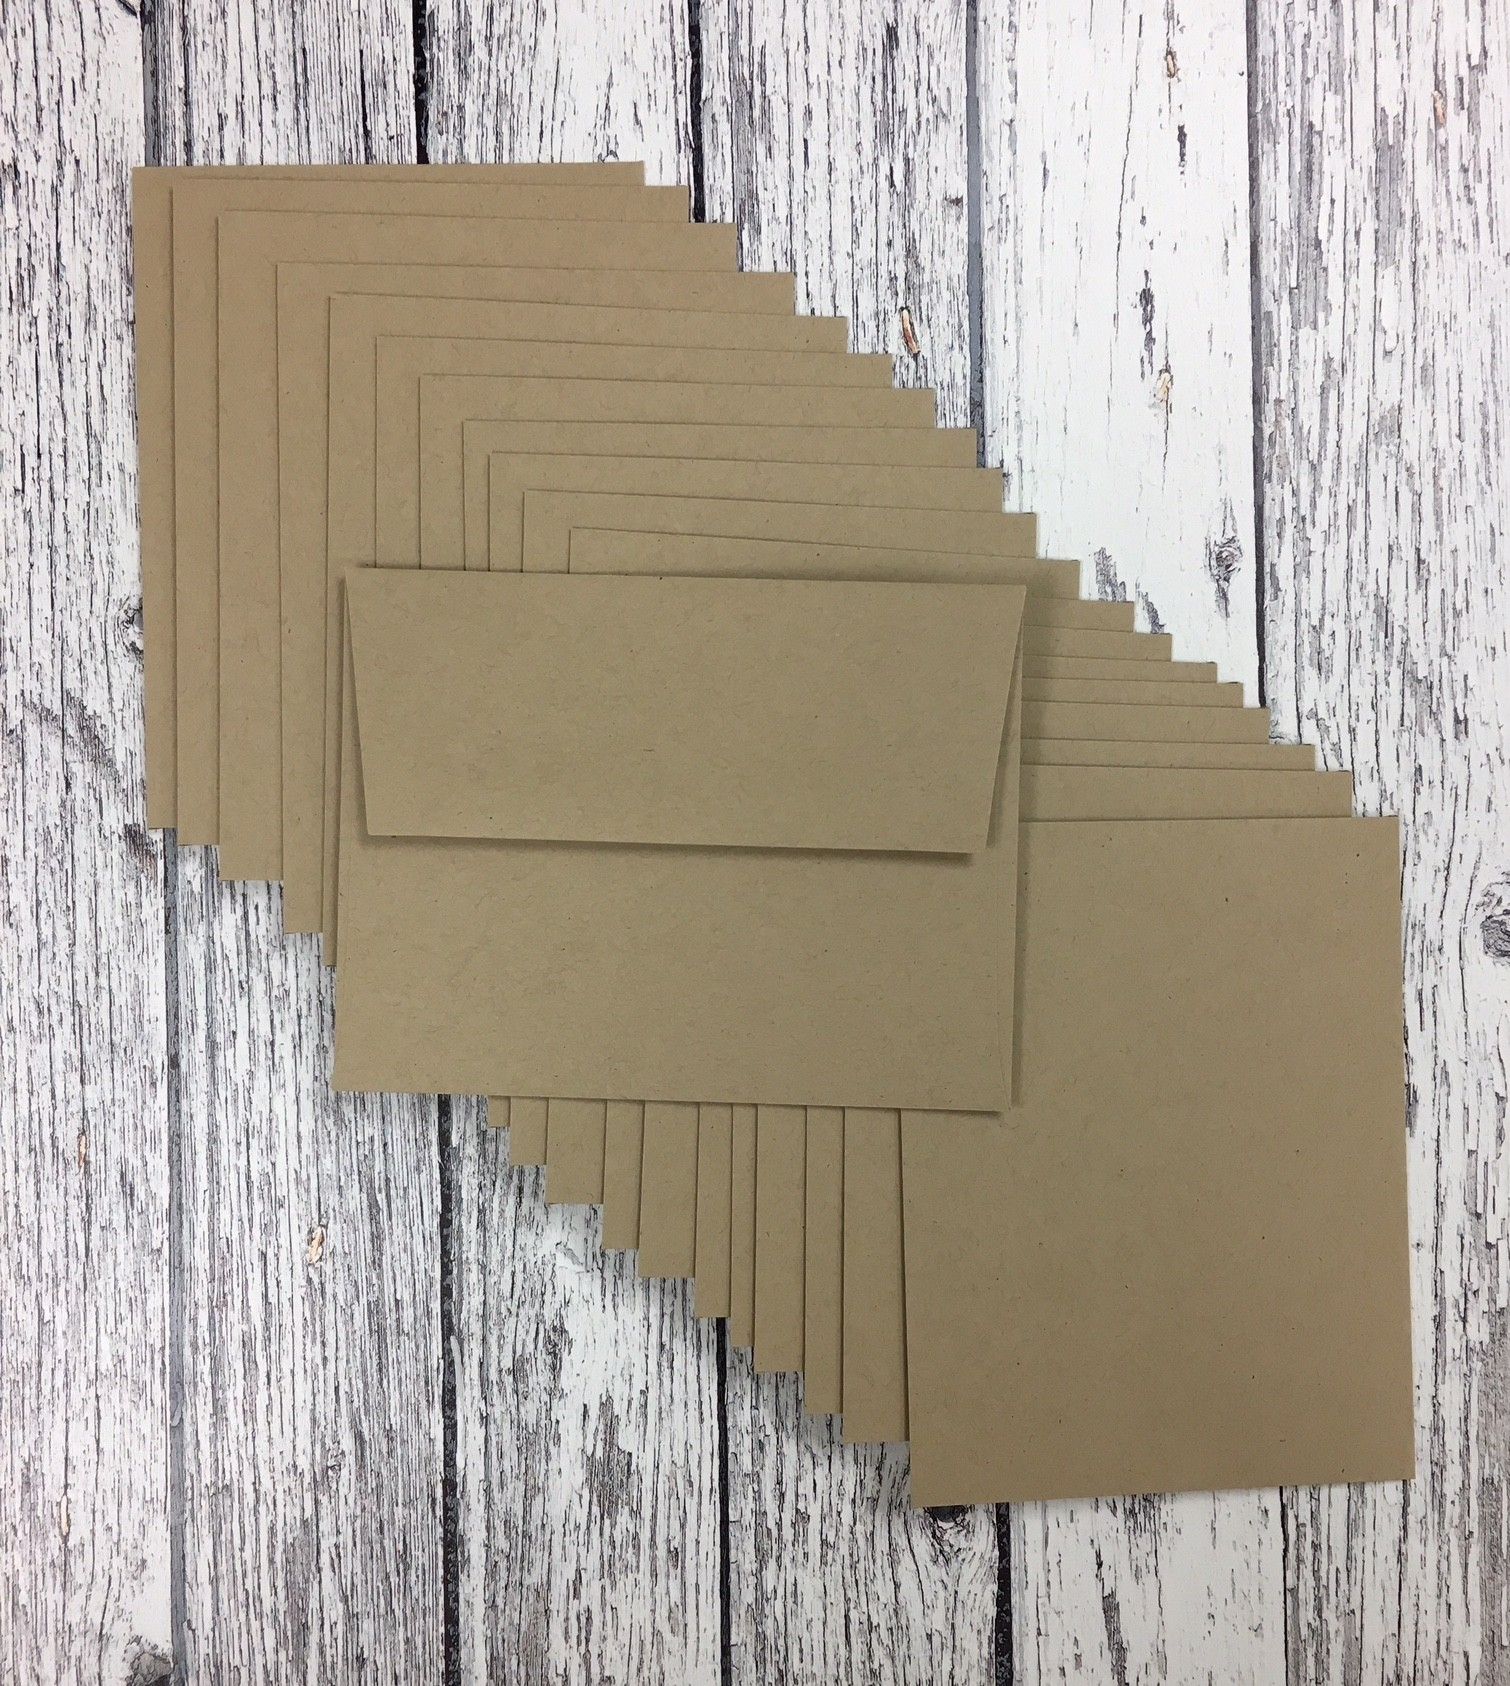 *NEW* - Taylored Expressions - A2 Envelopes - Toffee  - pack of 10